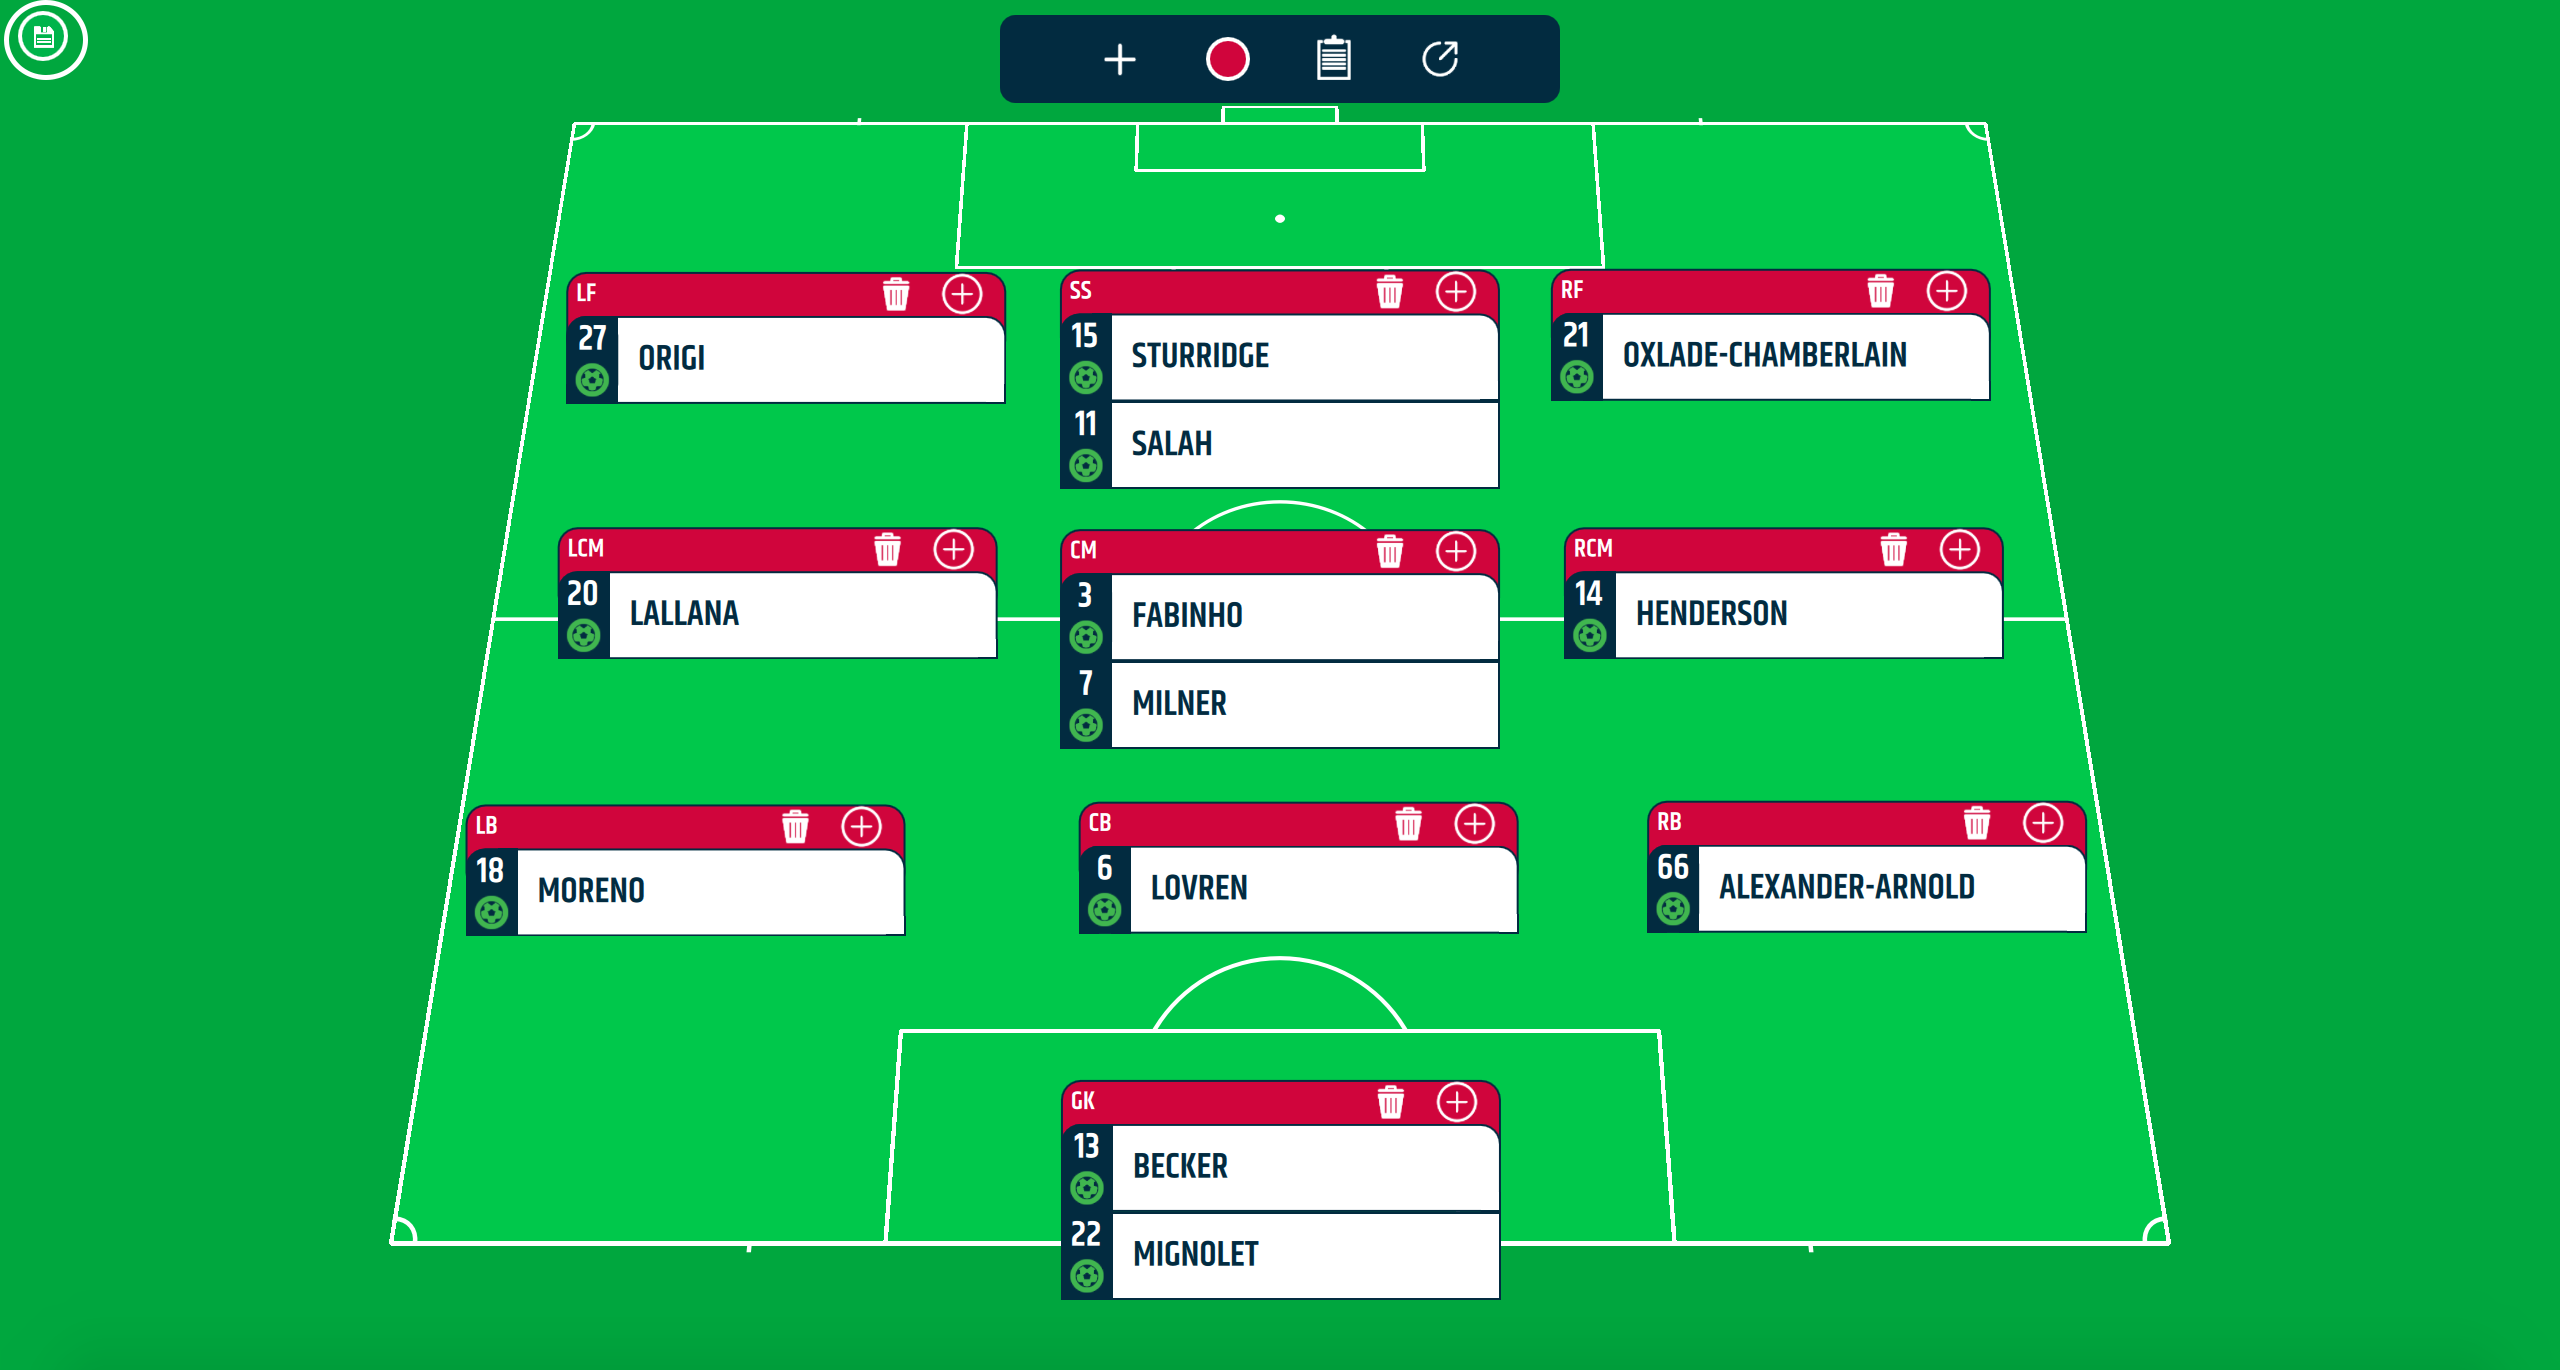 Creator_-_Depth_chart_-_Save_your_depth_chart.png